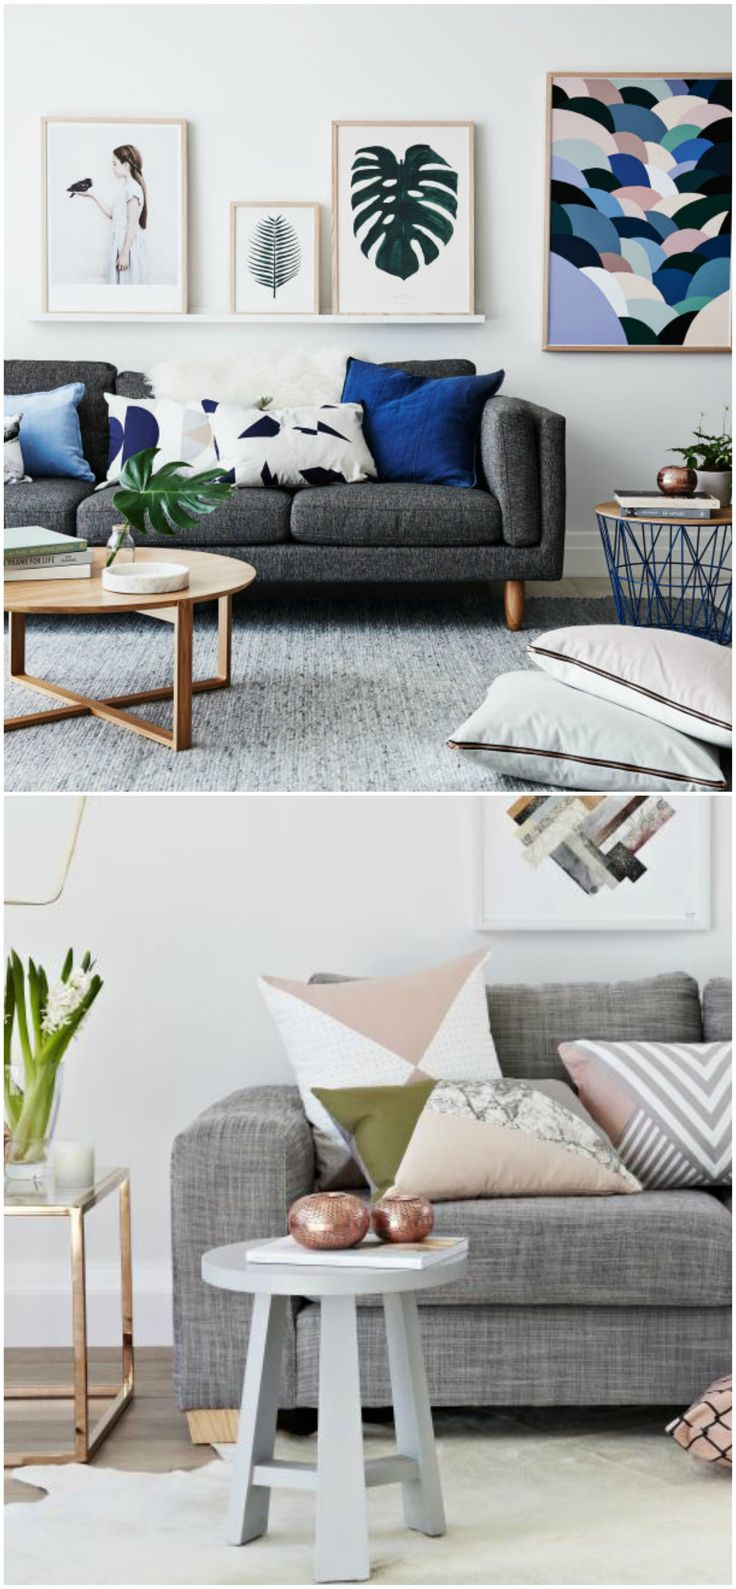 152 best images about living room ideas on pinterest for 60 minute makeover living room ideas